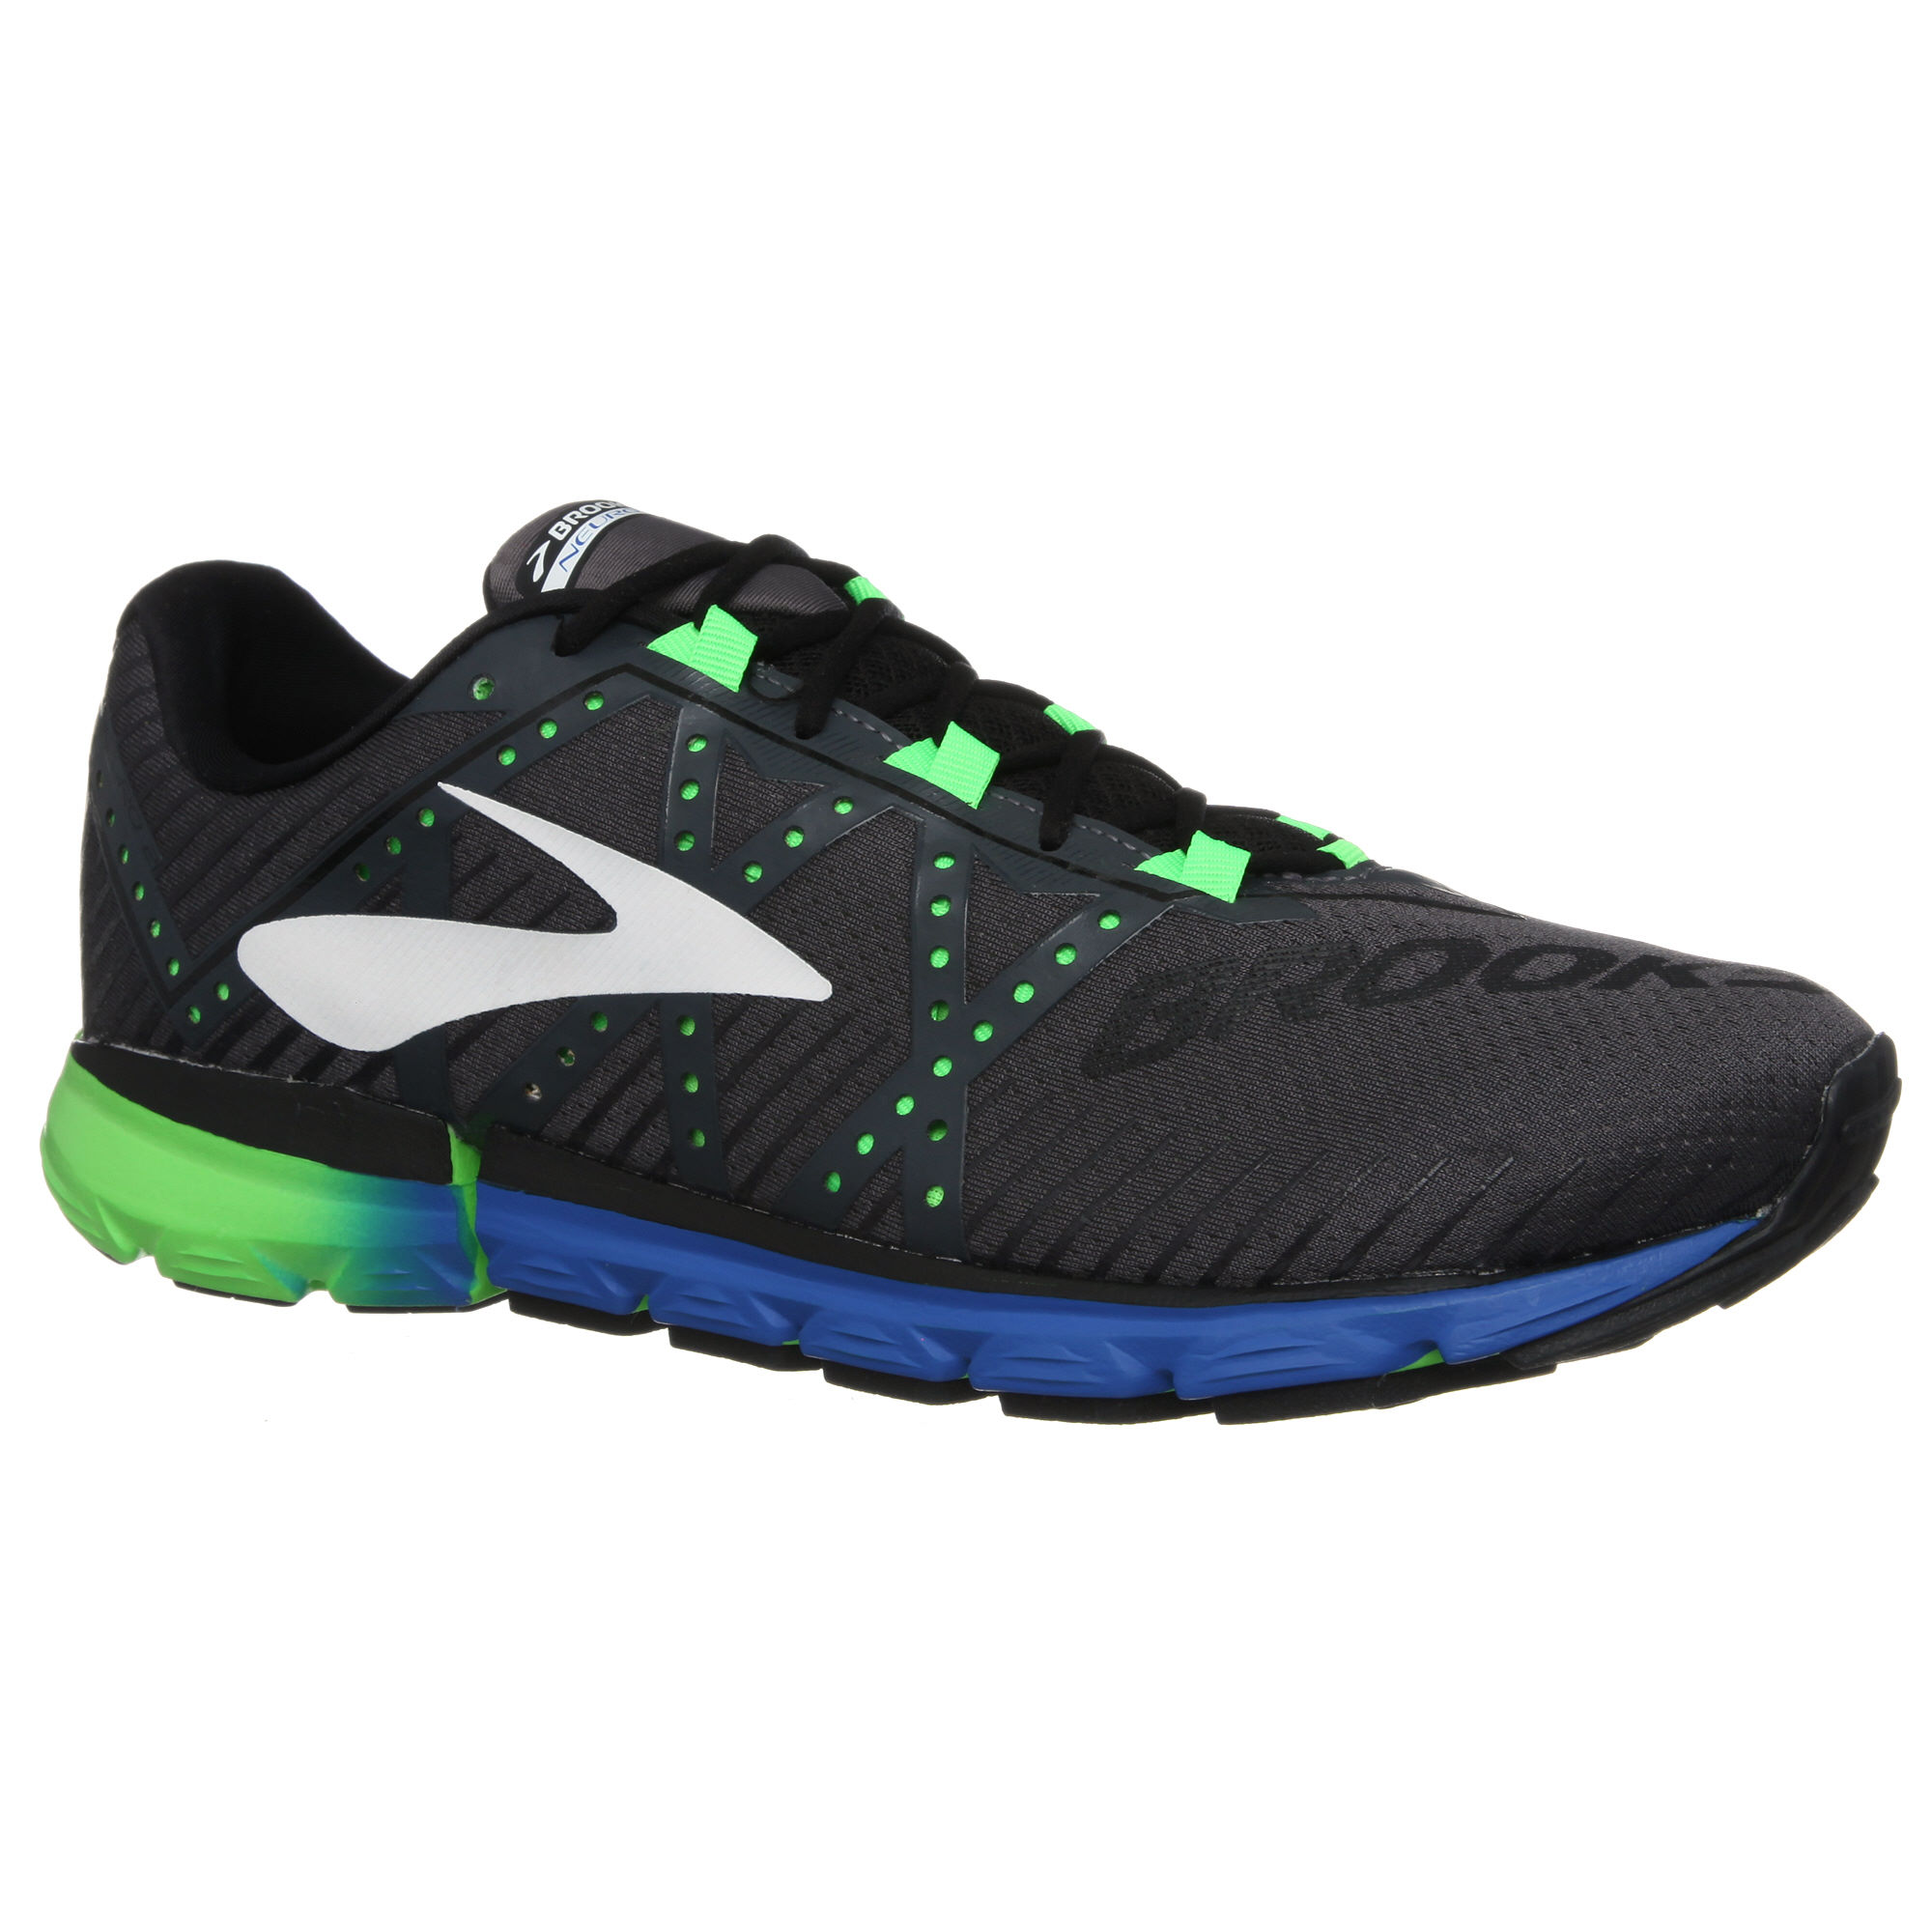 Shop women's running shoes from top brands like Nike, Brooks, New Balance, Asics & more at paydhanfirabi.ml Eligible for Free Shipping and Free Returns.